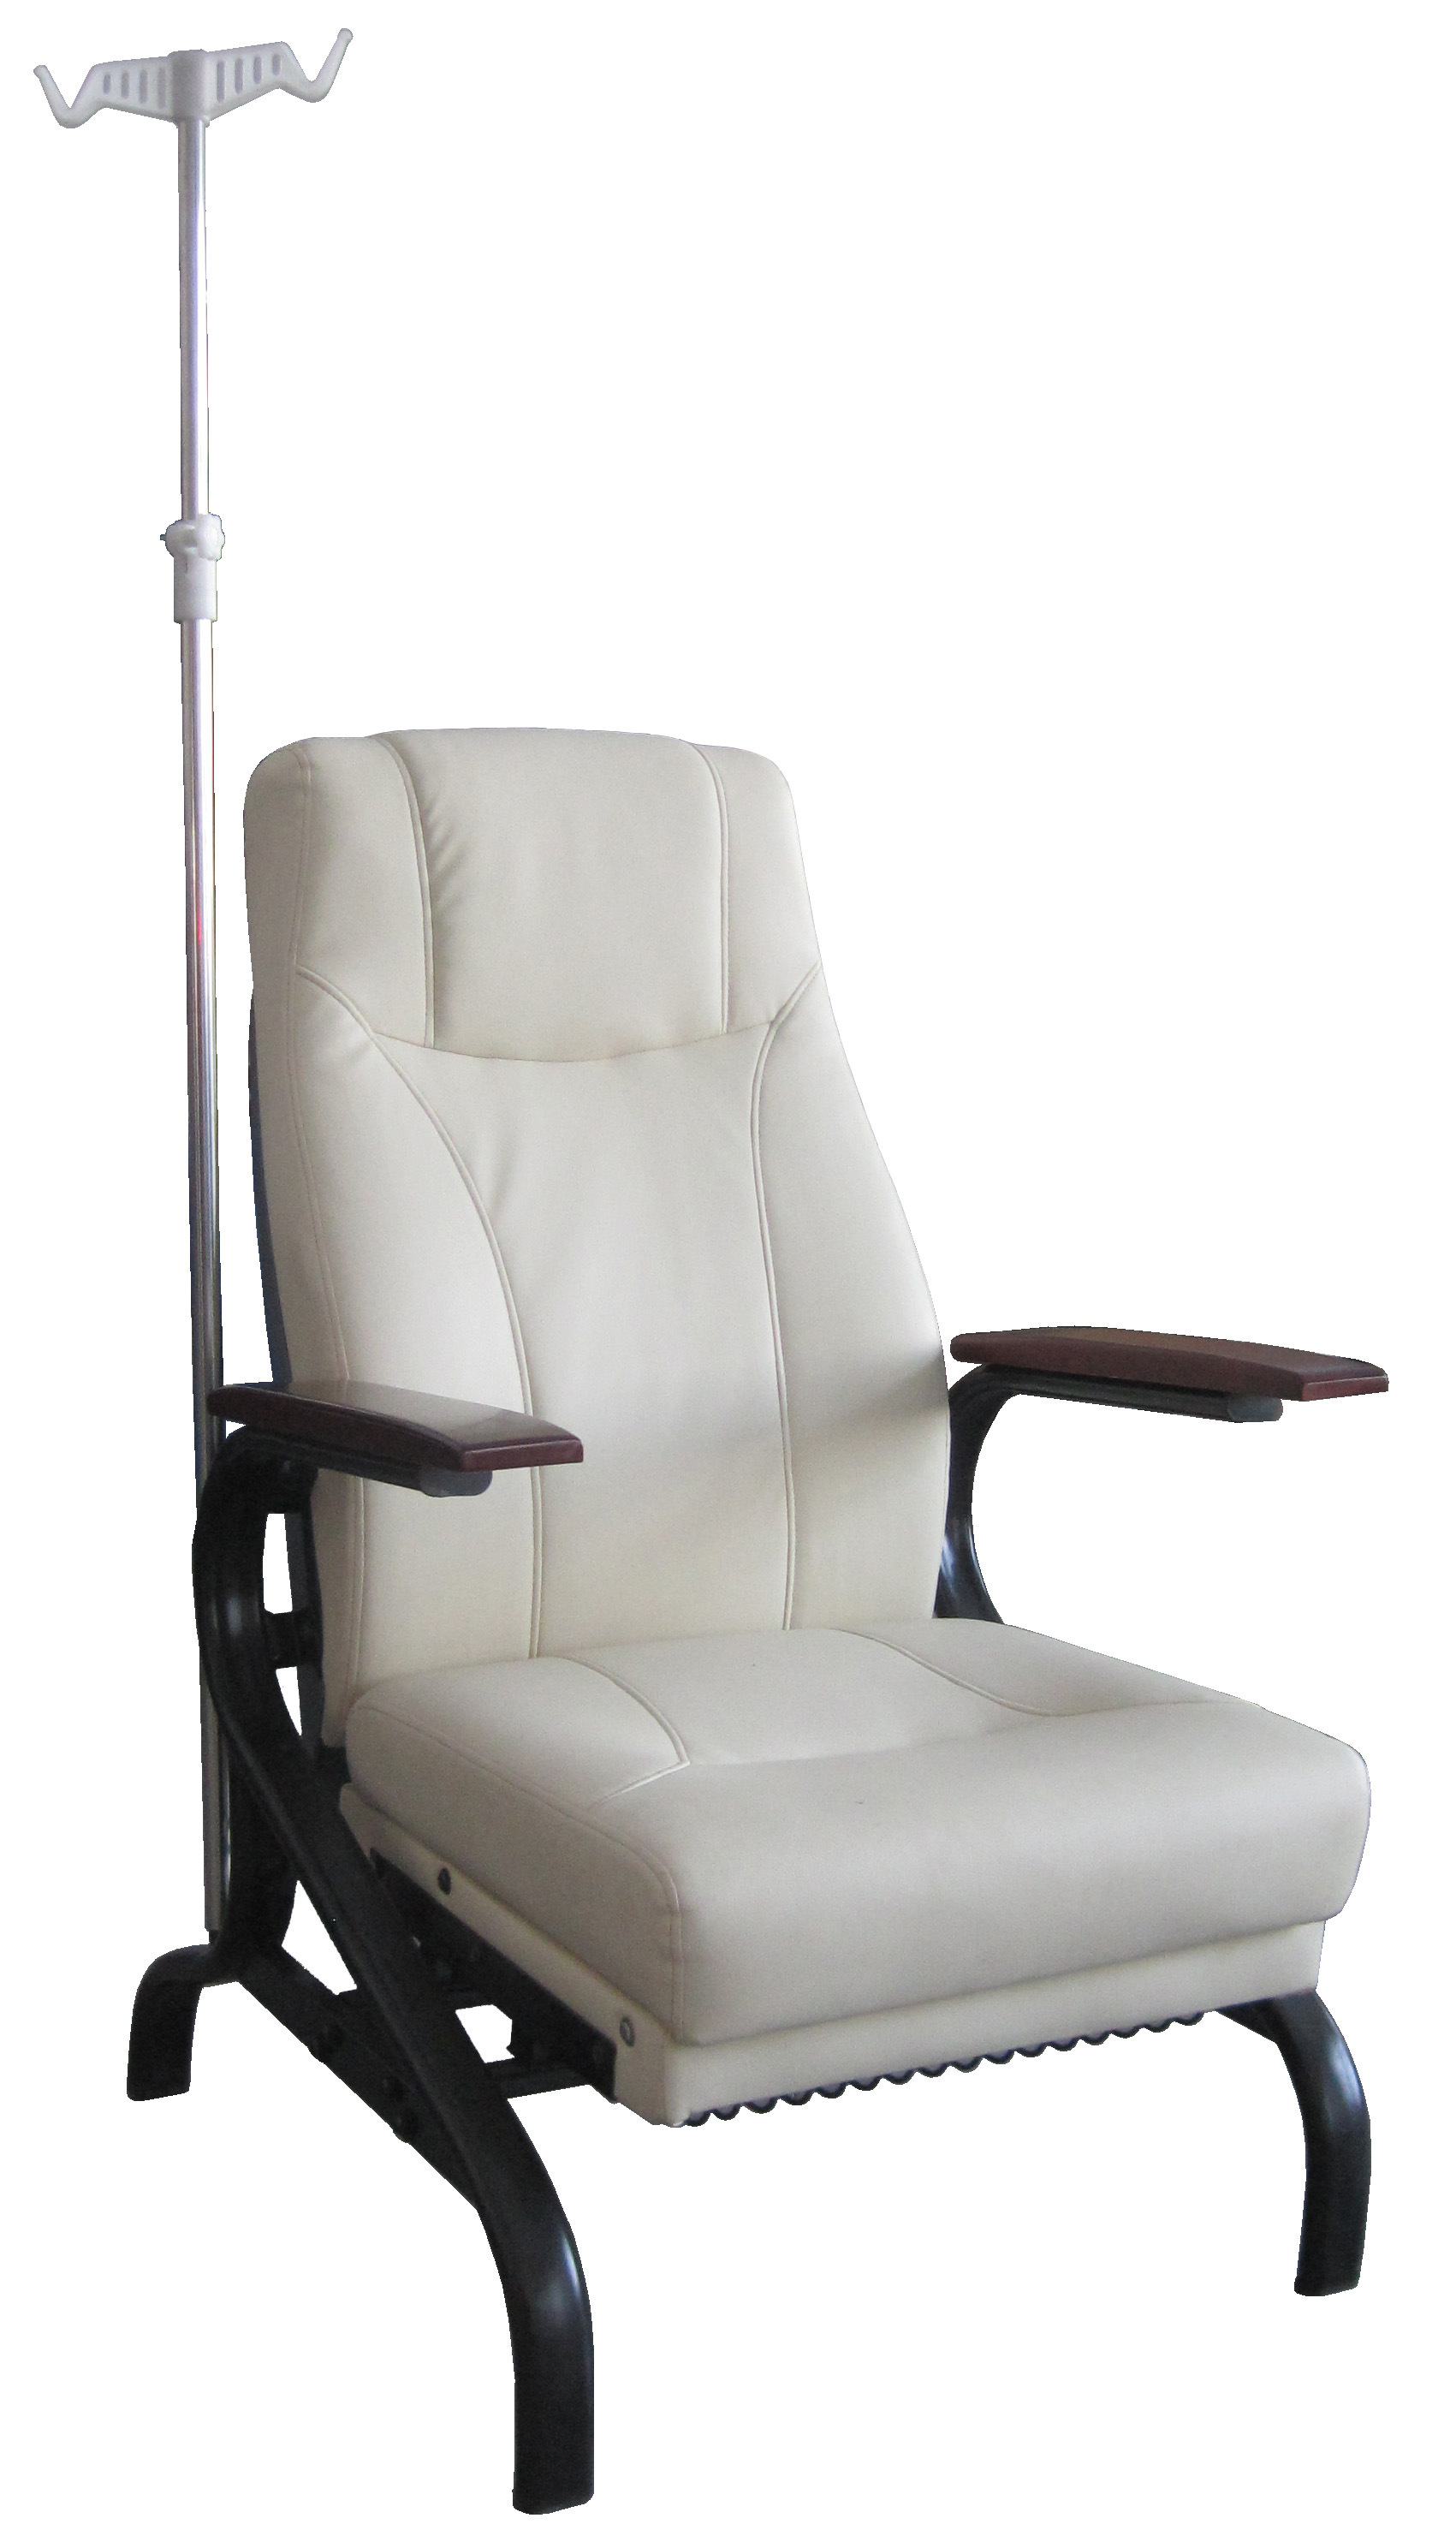 Hospital Electric Blood Donation Chair Dialysis Seating Patient Seat (P04)